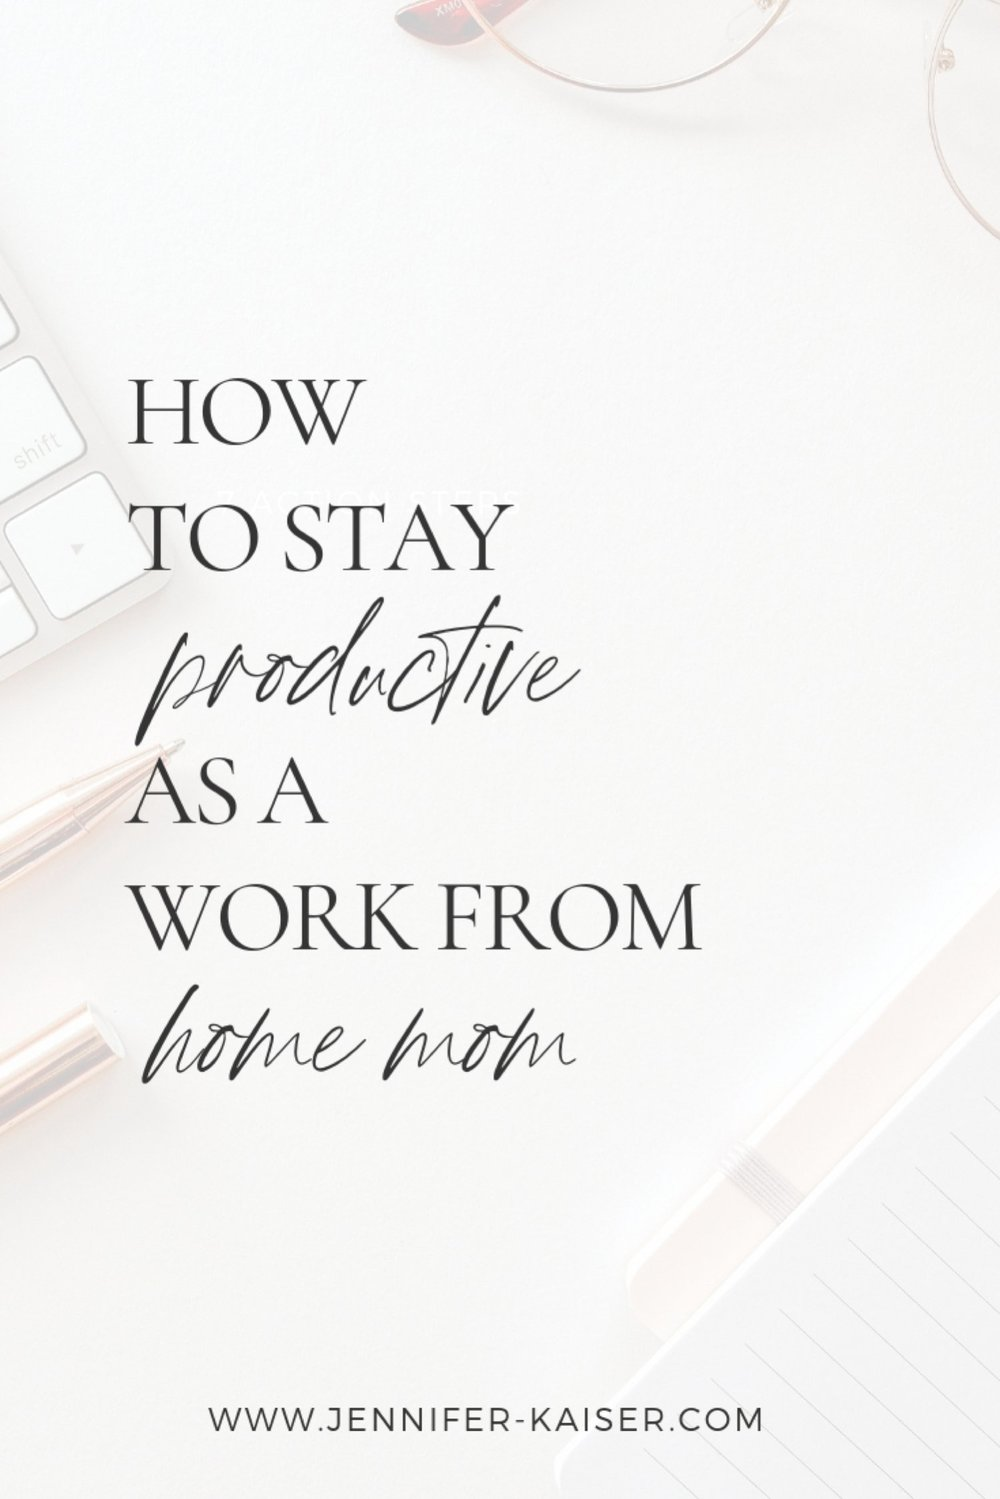 how to stay productive as a work from home mom